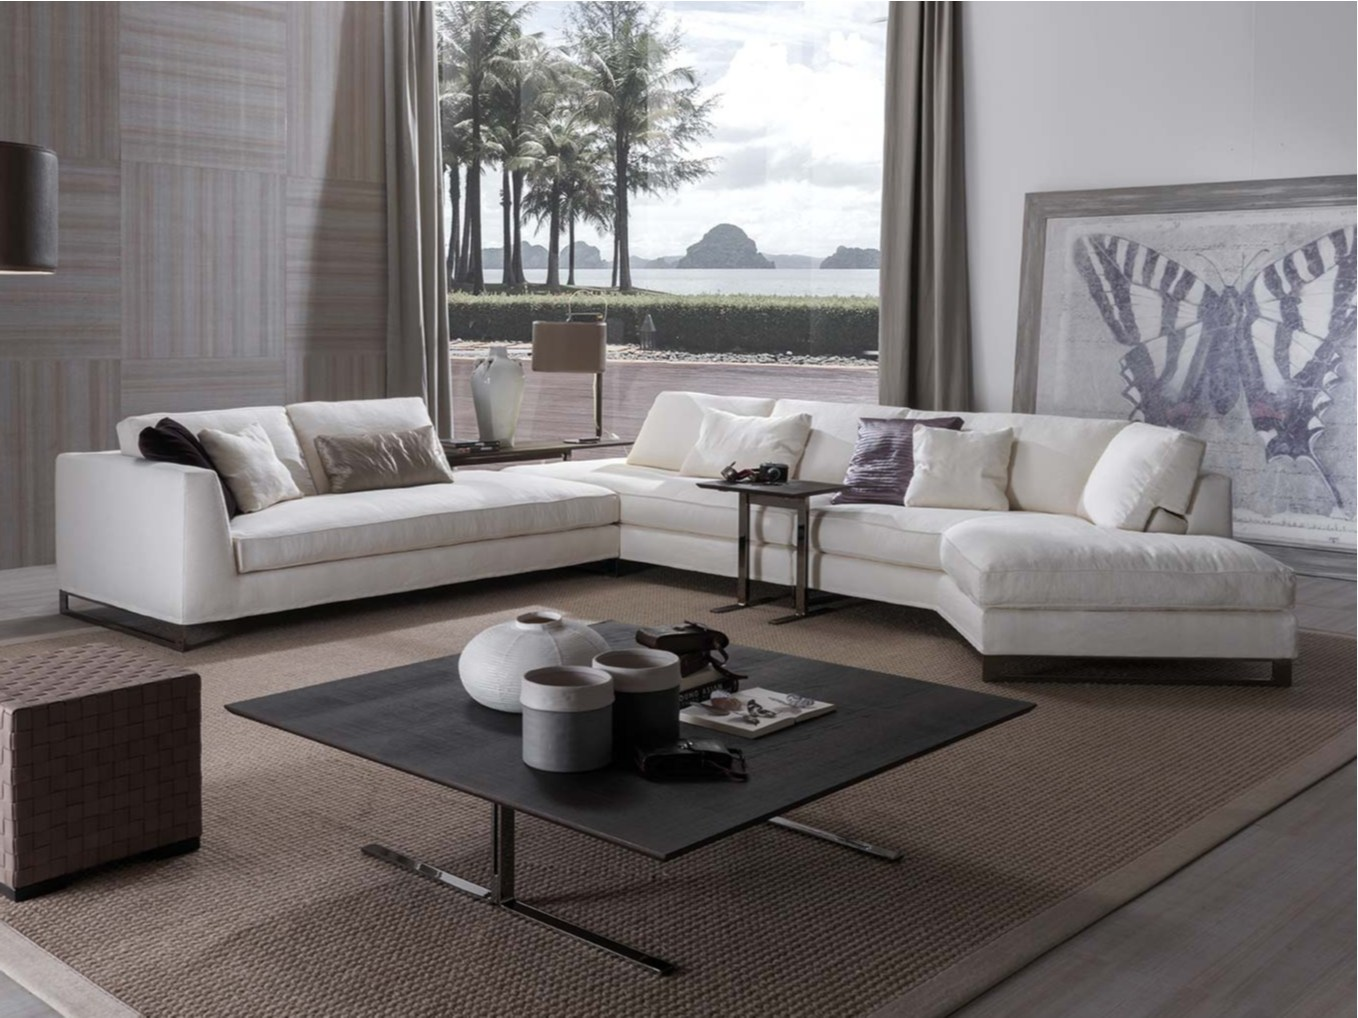 Divano Forlini Poltrone E Sofa Davis Free Sectional Sofa By Frigerio Poltrone E Divani